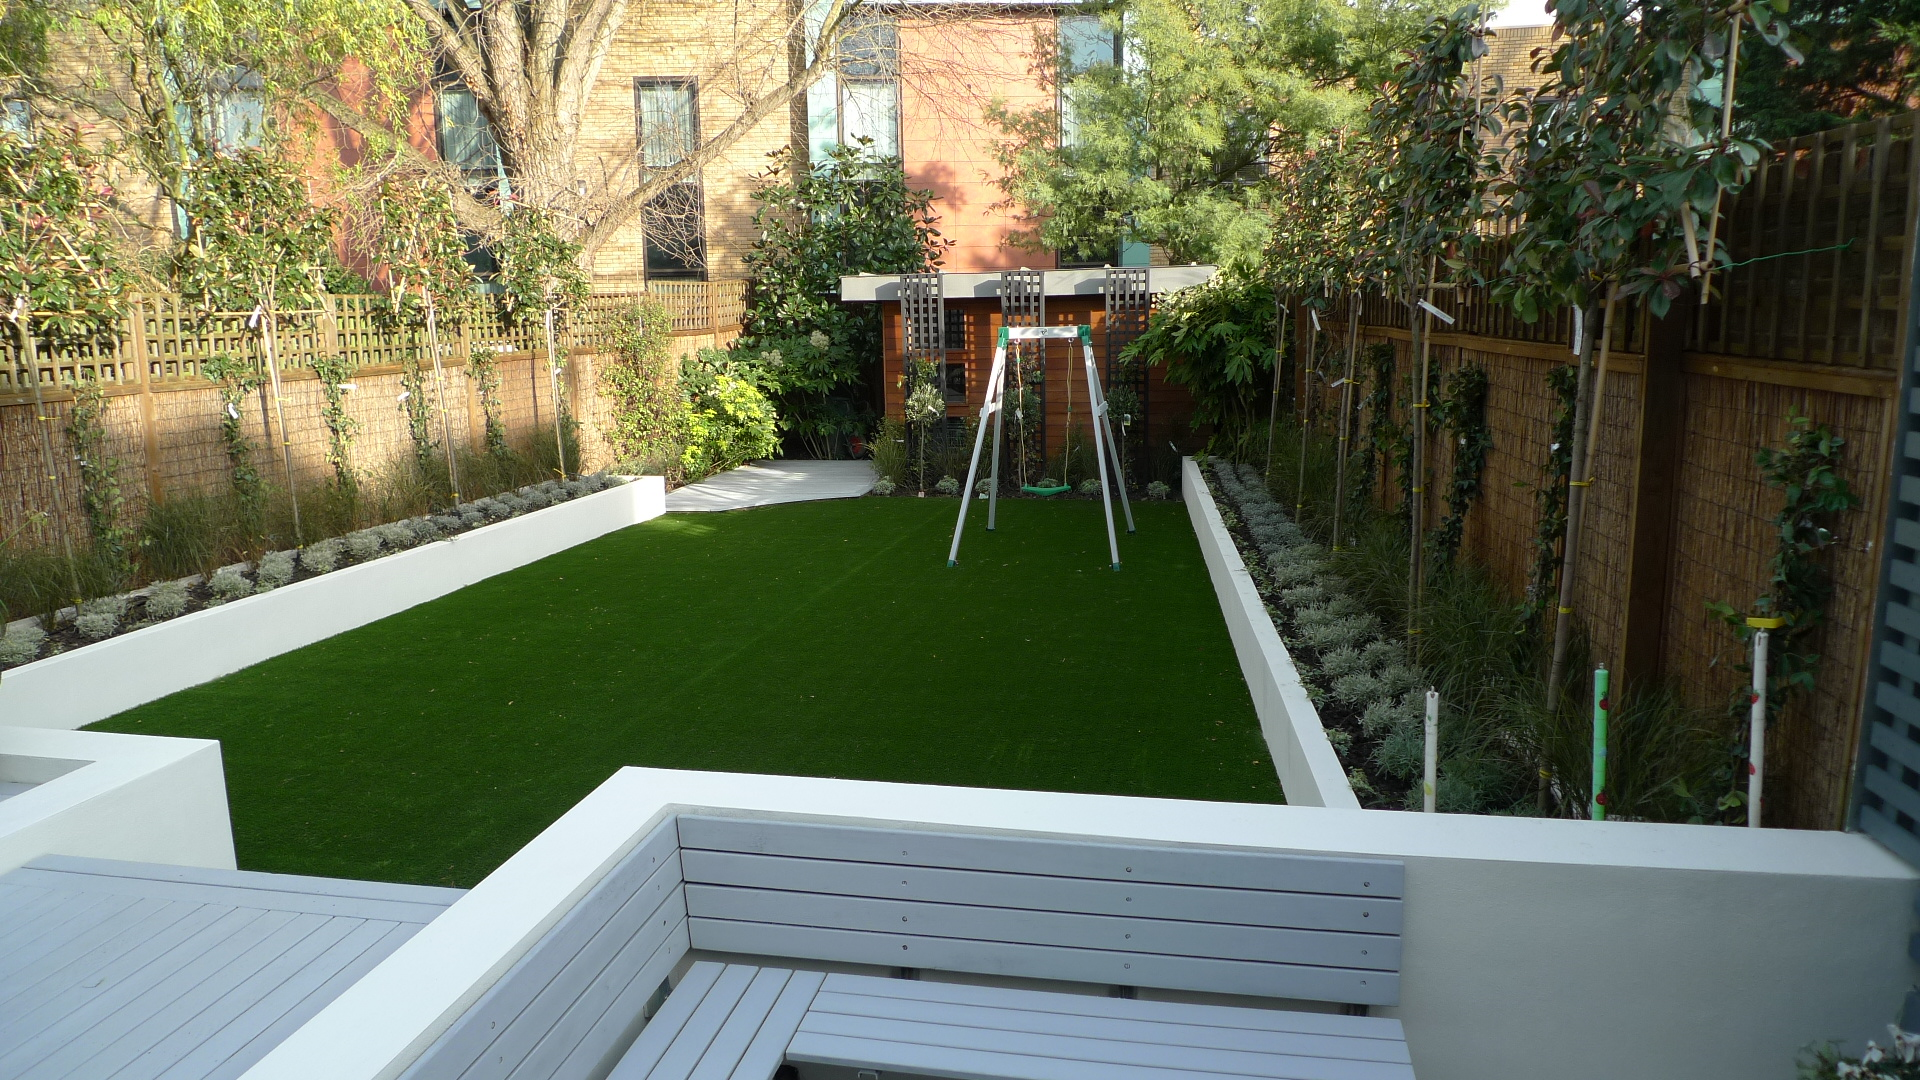 Modern garden design ideas london london garden design for Backyard design ideas